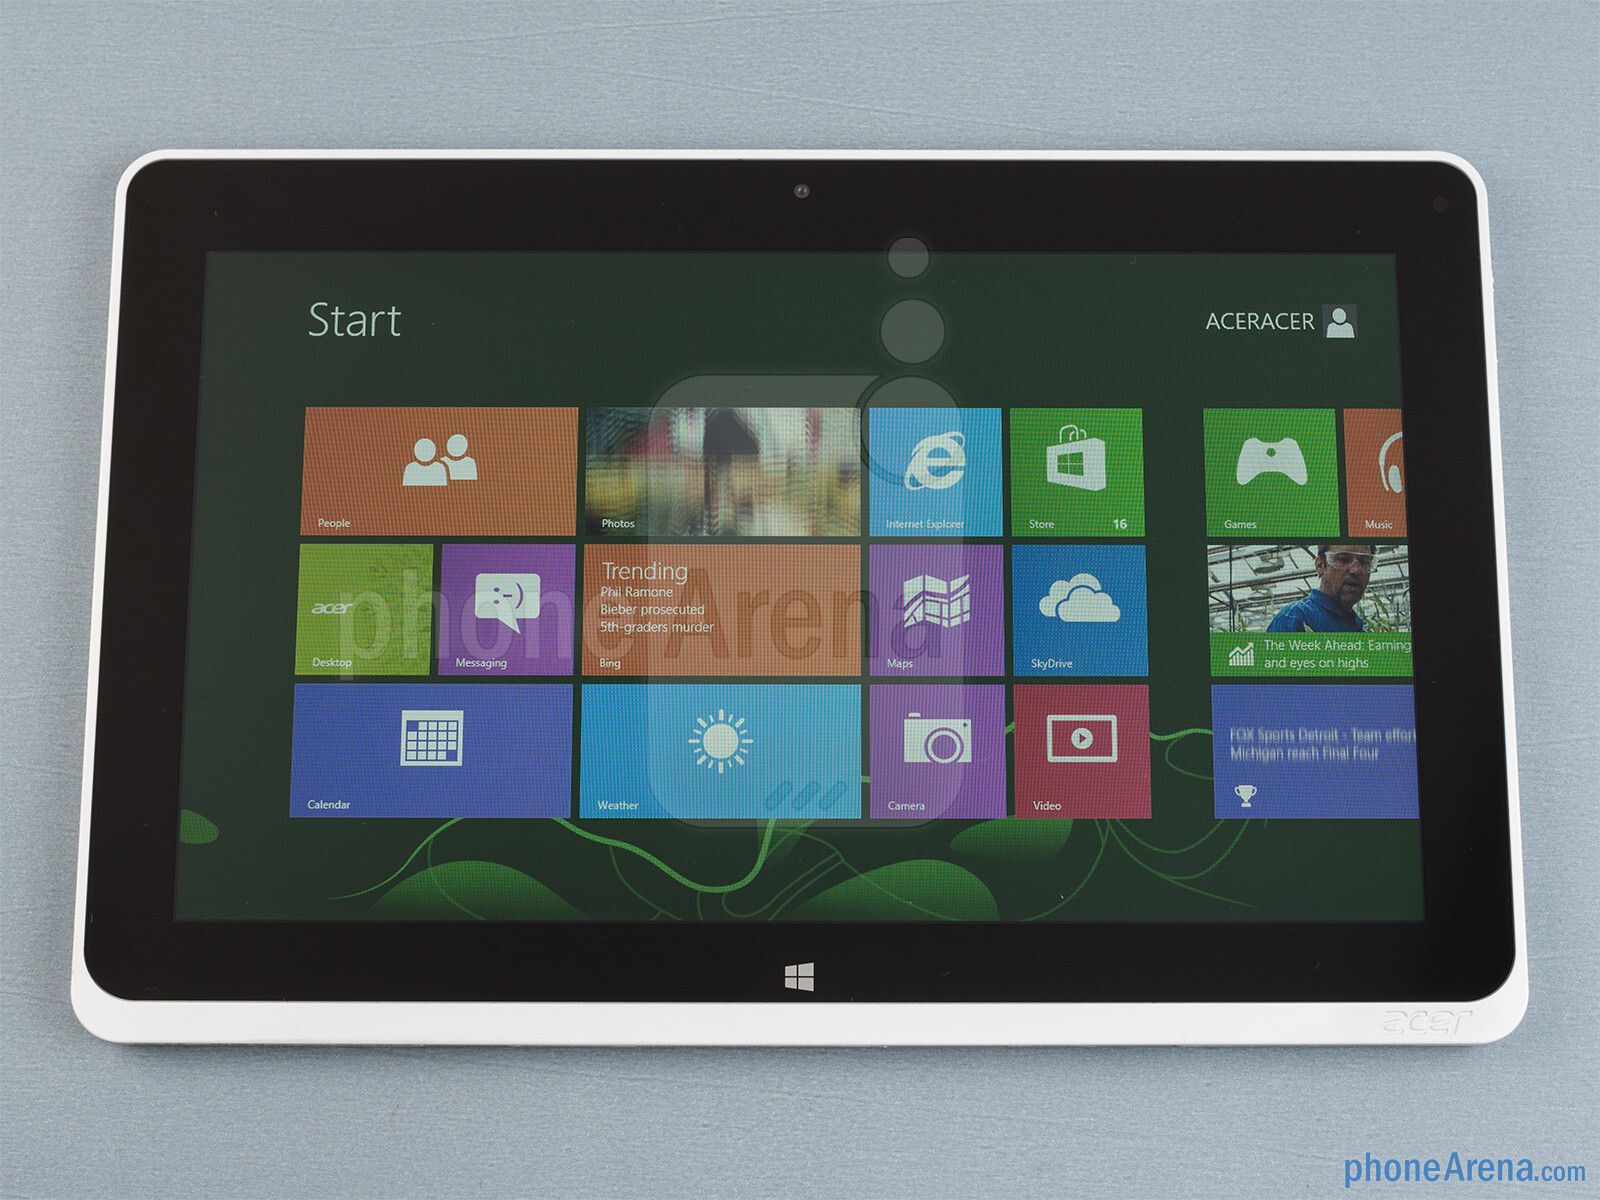 acer iconia w511 review rh phonearena com Acer Tablet Charger Tablet Cases